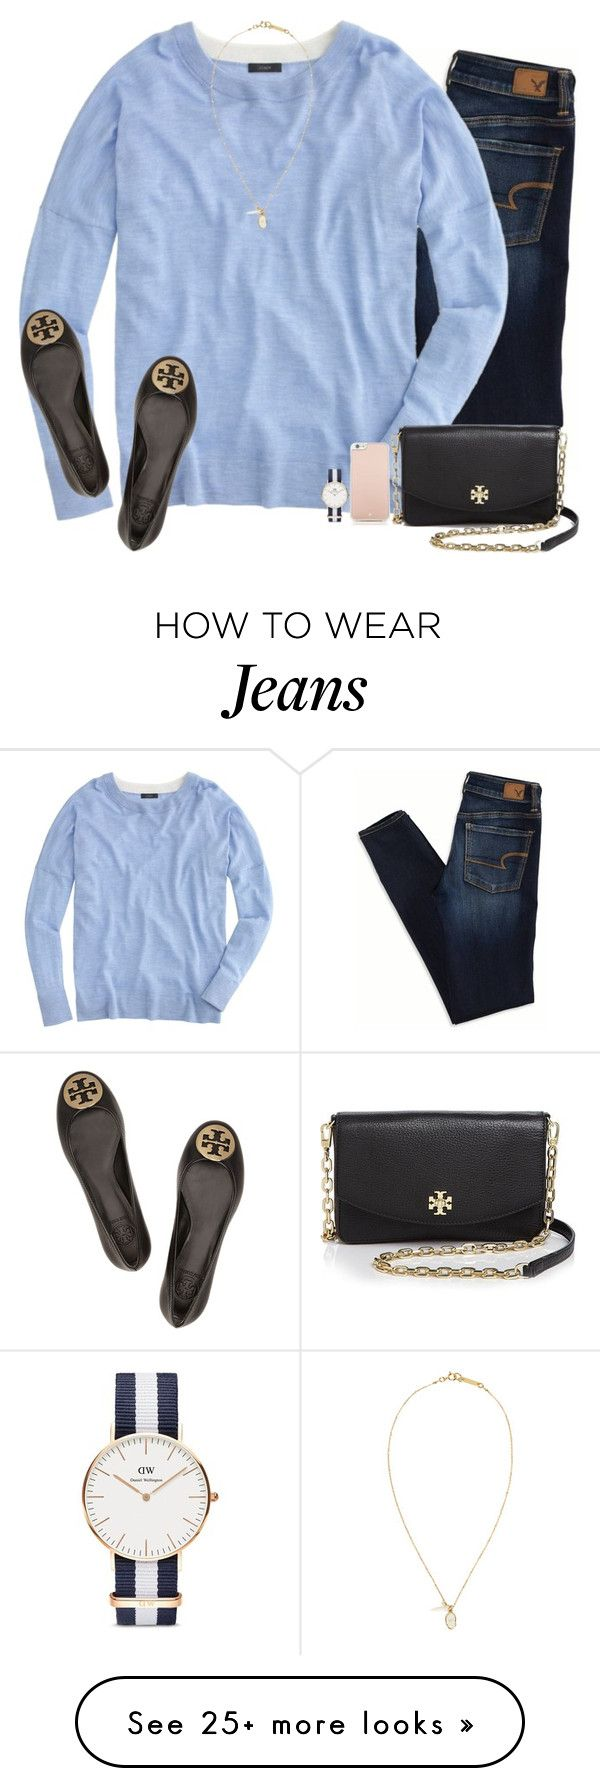 """""""A is for American Eagle jeans"""" by blakelyclairew on Polyvore featuring moda, American Eagle Outfitters, J.Crew, Isabel Marant, Tory Burch, Kate Spade i Daniel Wellington"""